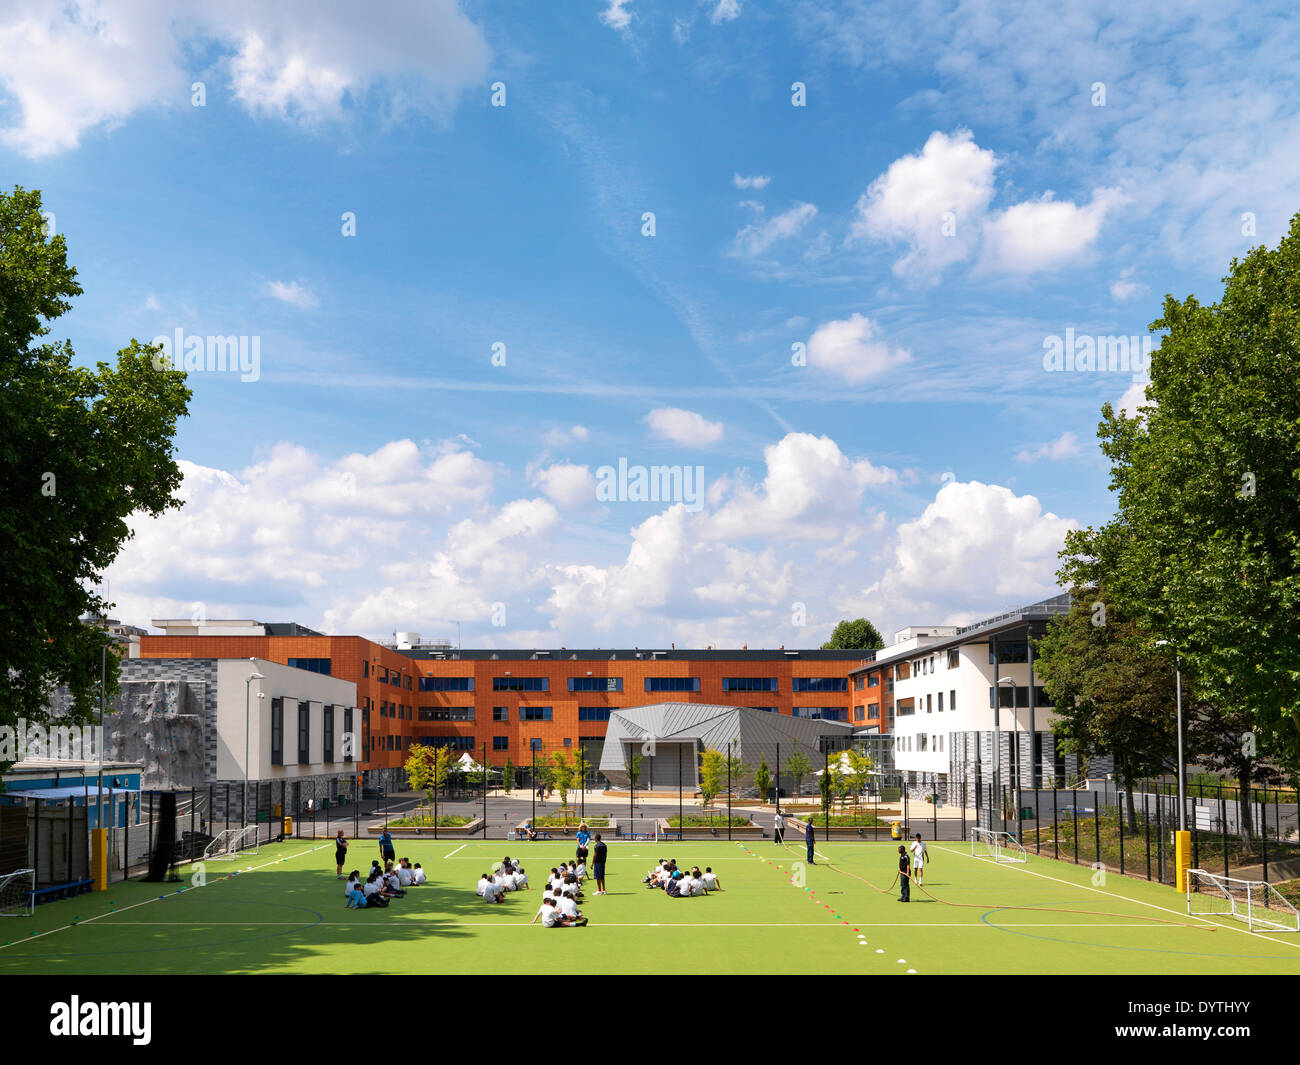 Schoolchildren in playing field of Pimlico Academy, Library and Adult Education centre, London - Stock Image